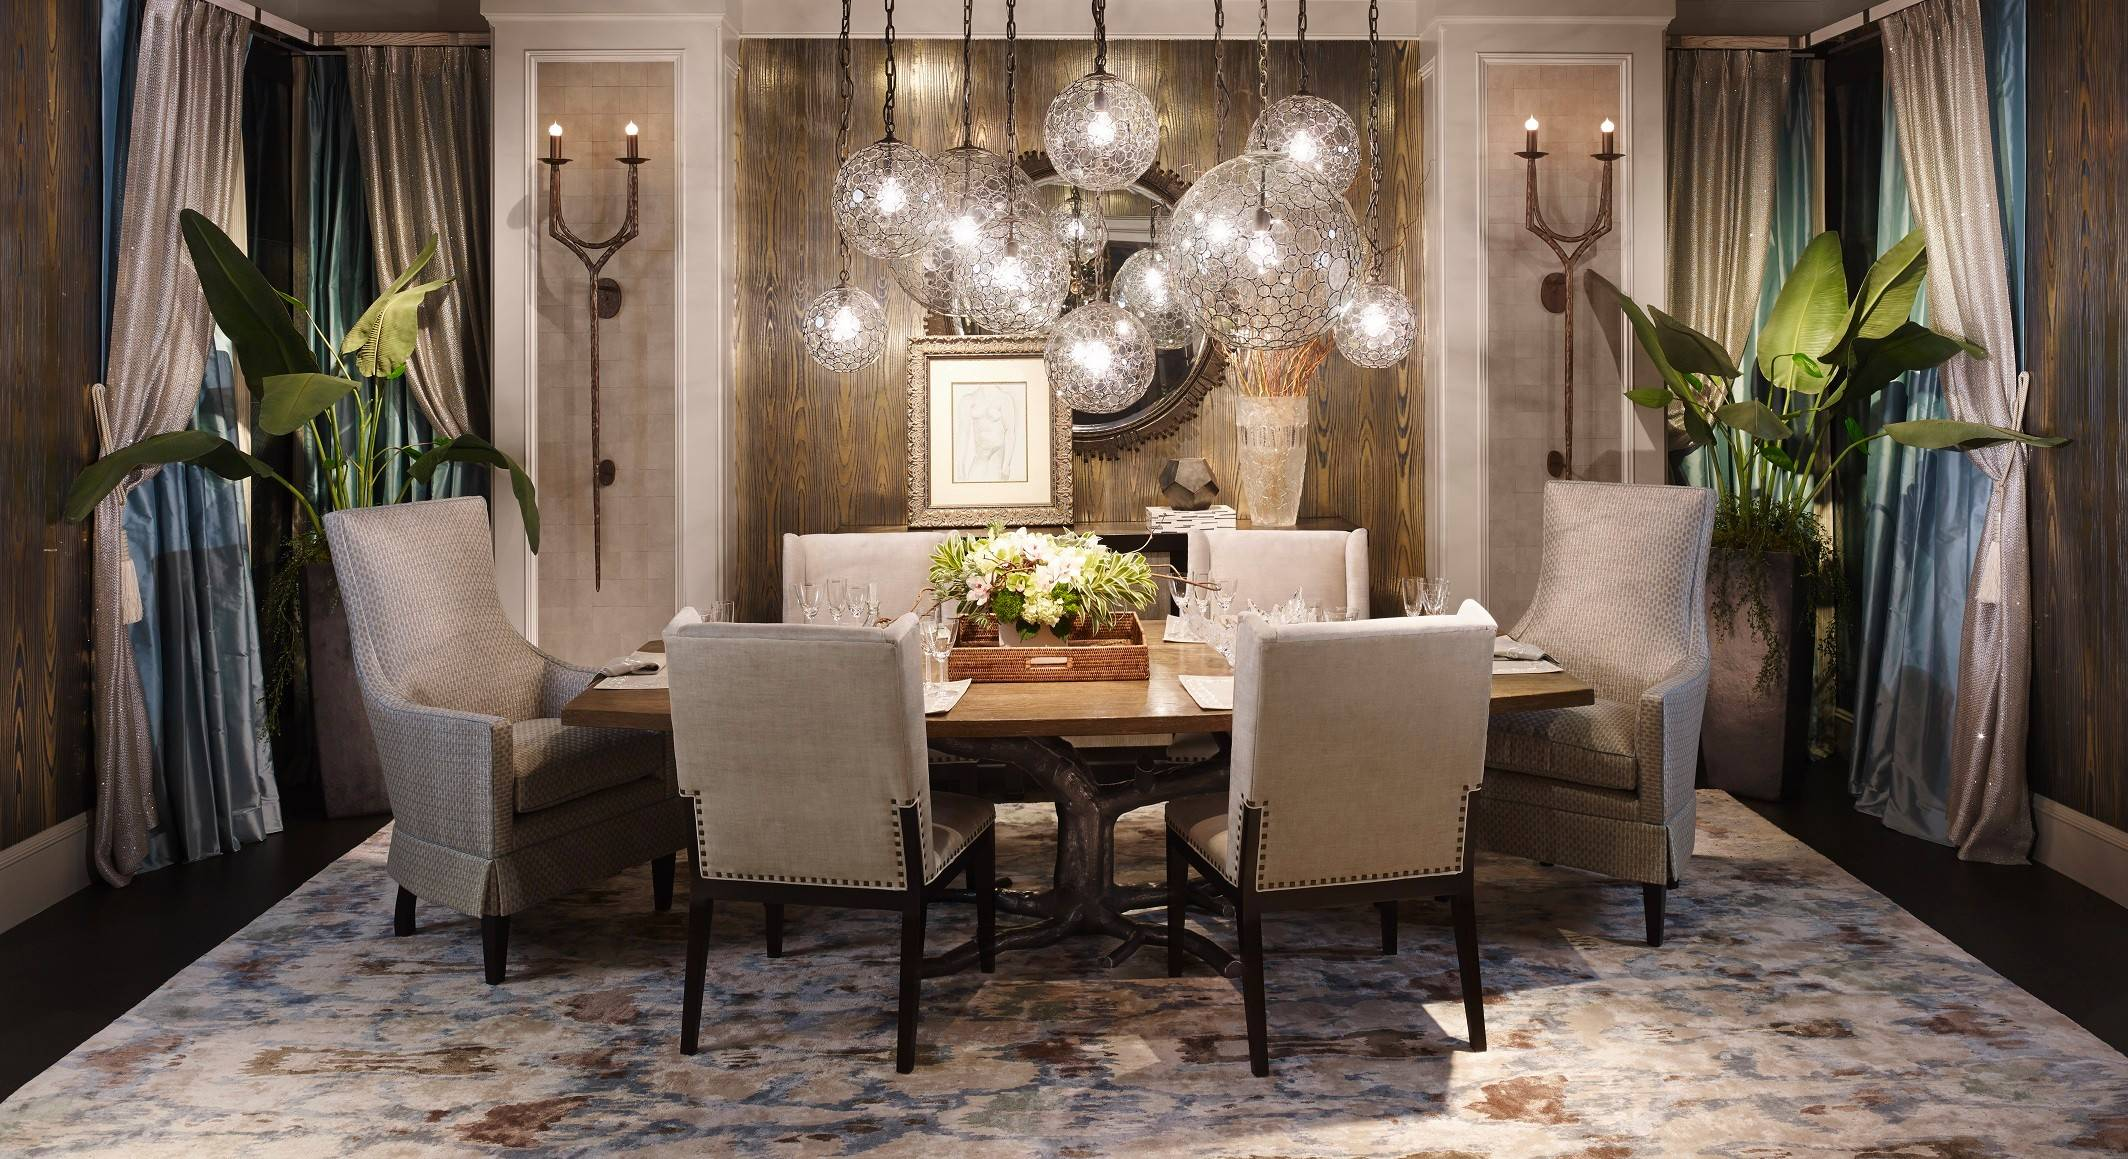 Designer Erik Kolacz' dining room was inspired by a Napa Valley vacation home where he and friends enjoyed chatting at mealtime.